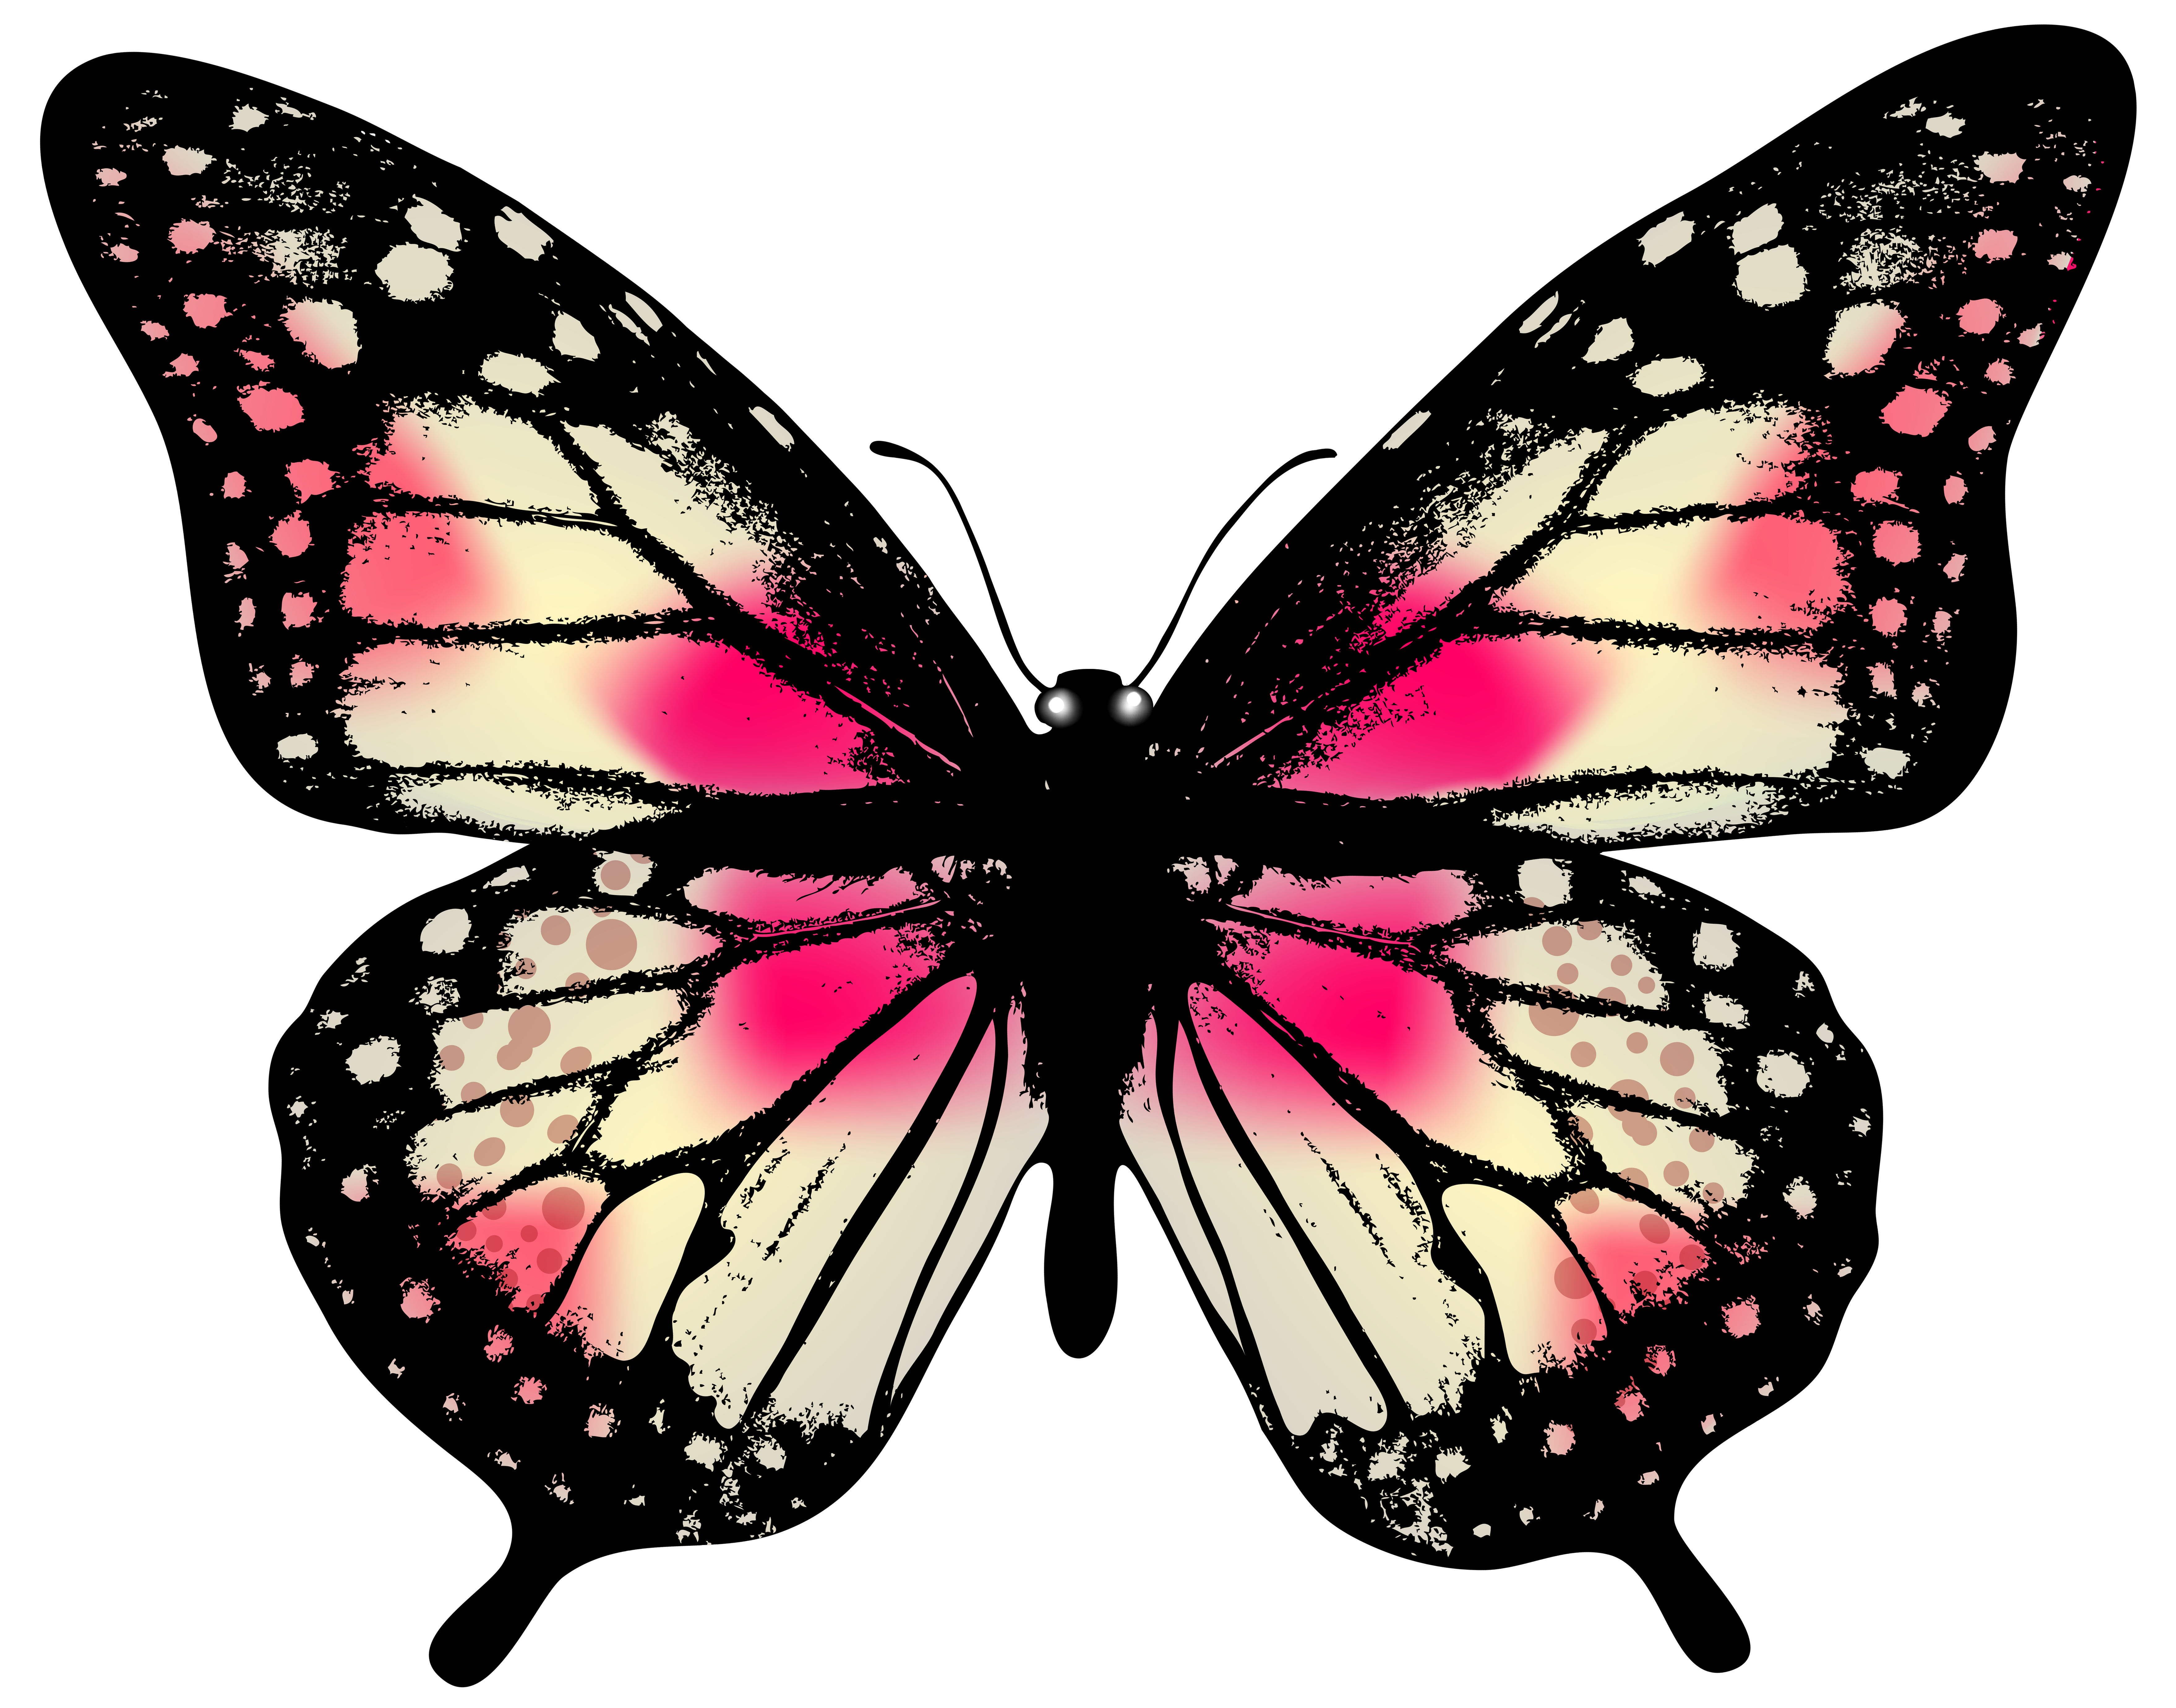 7035x5523 Large Pink Butterfly Png Clip Art Imageu200b Gallery Yopriceville